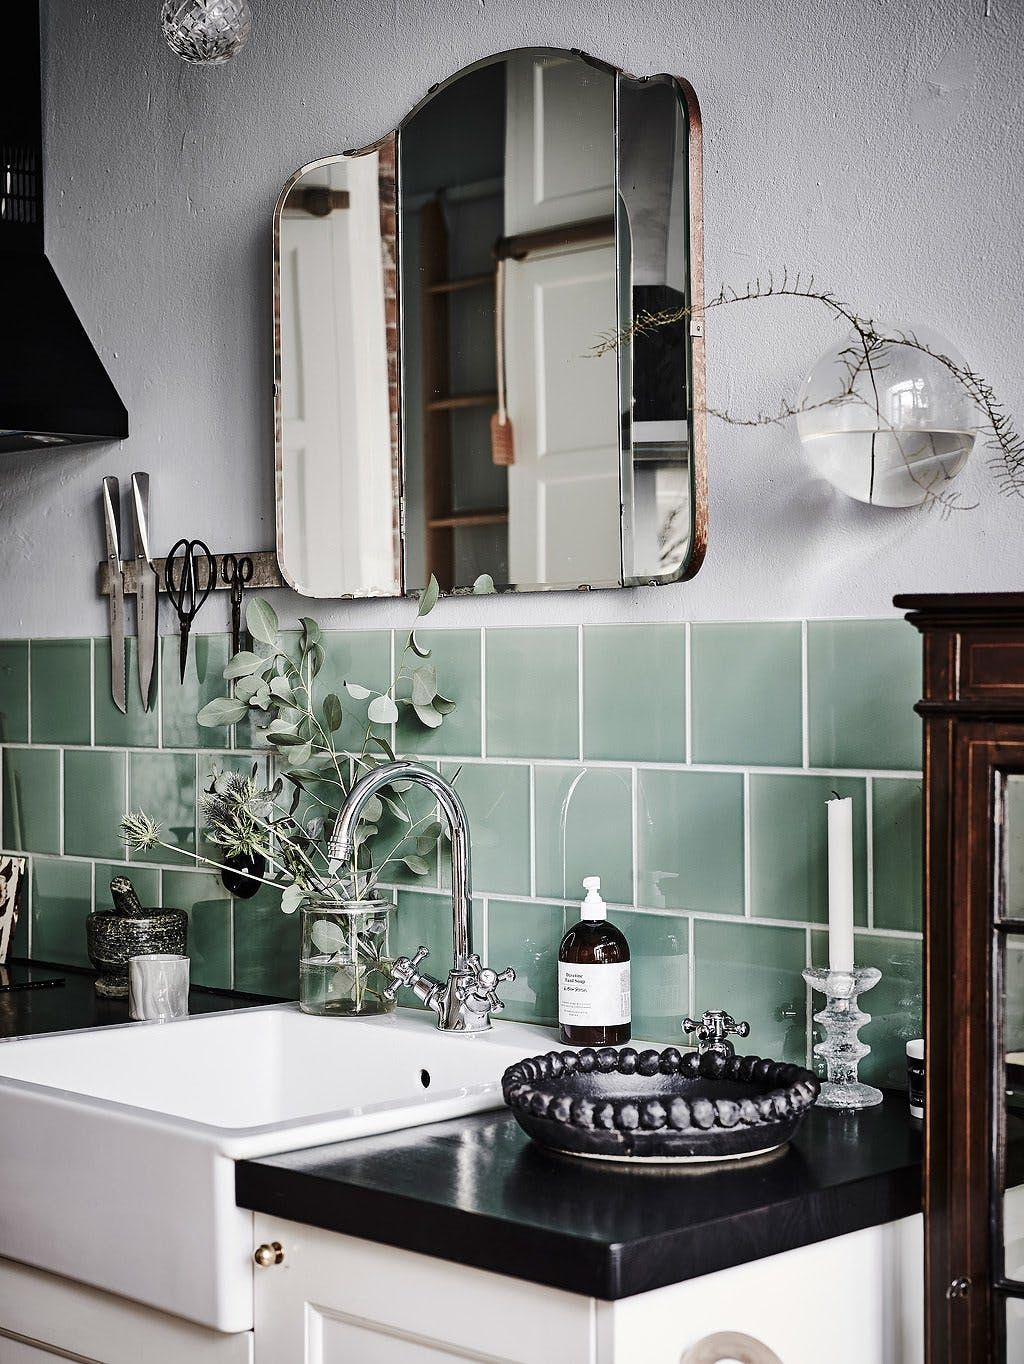 7 inexpensive alternatives to subway tile for your kitchen 7 inexpensive alternatives to subway tile for your kitchen doublecrazyfo Image collections